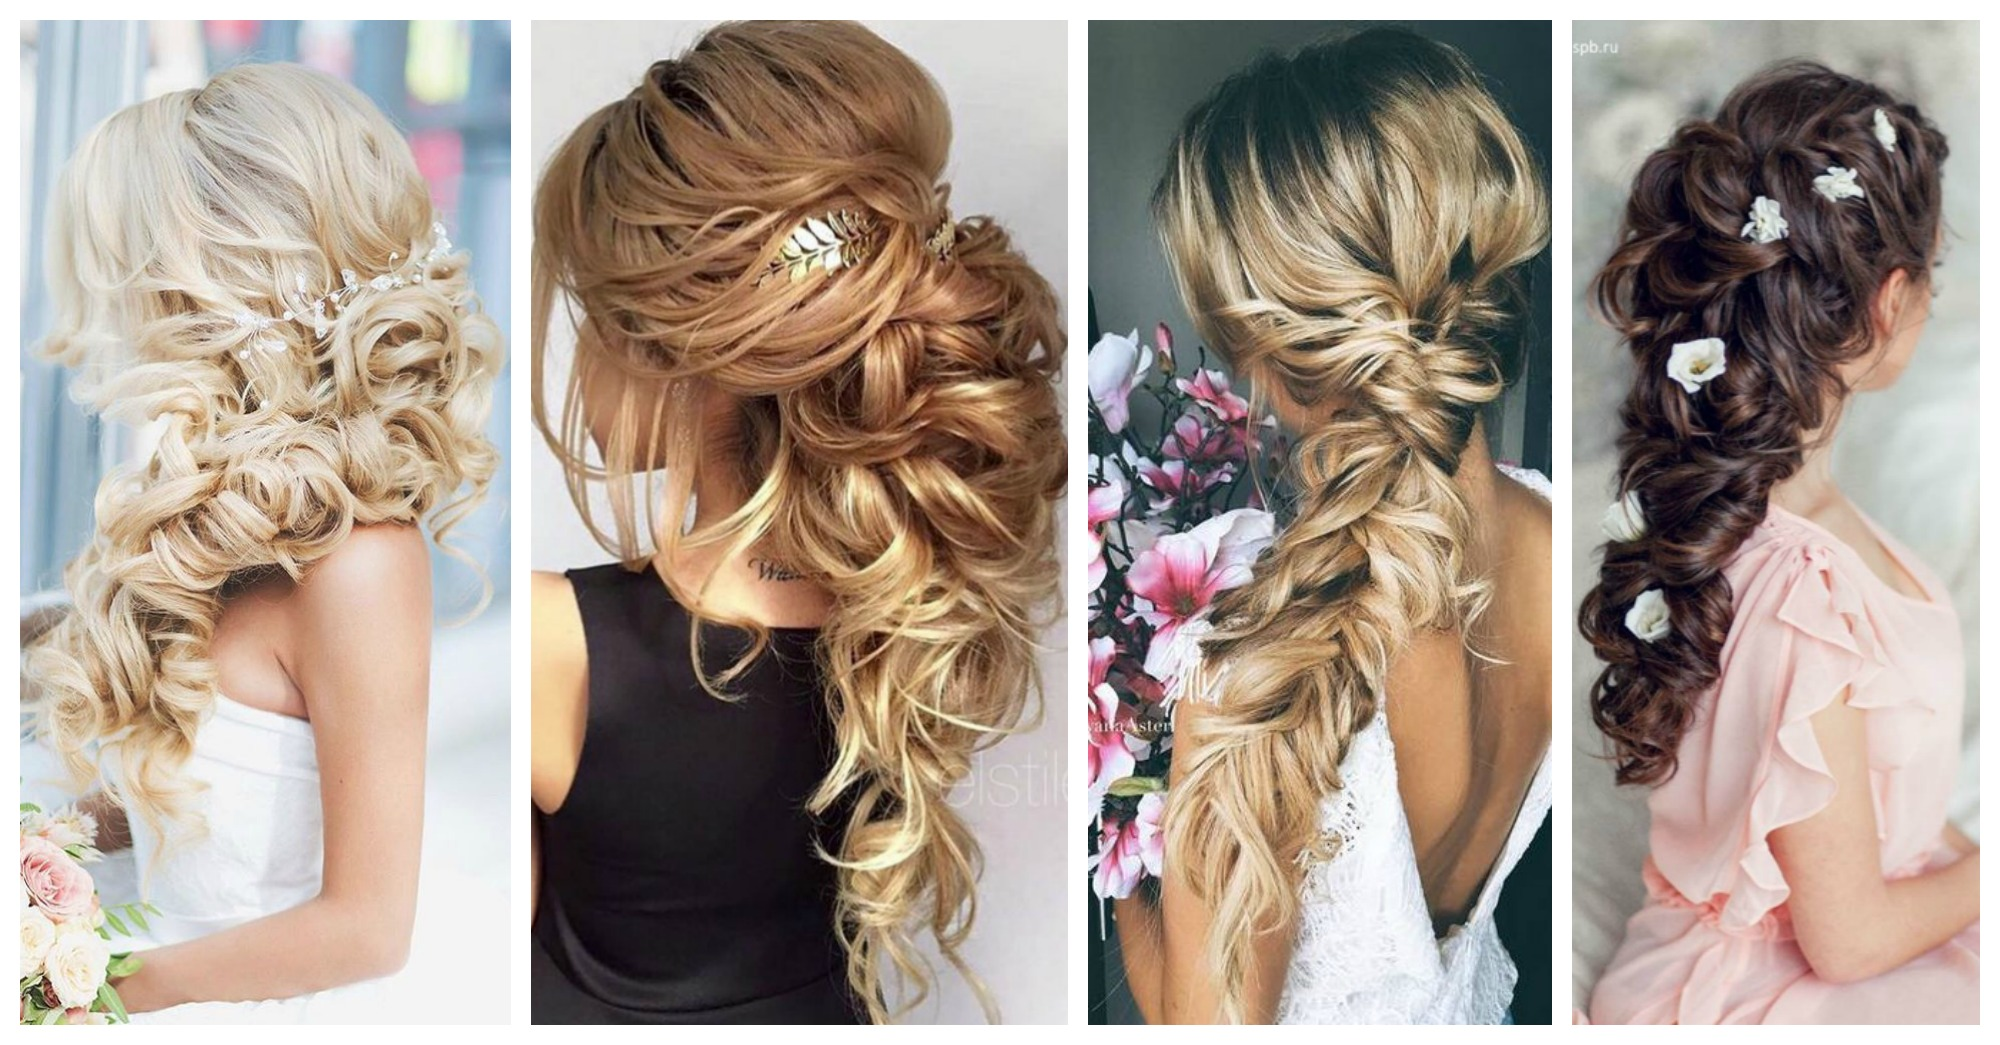 10 Stunning Hairstyles Future Brides Must See